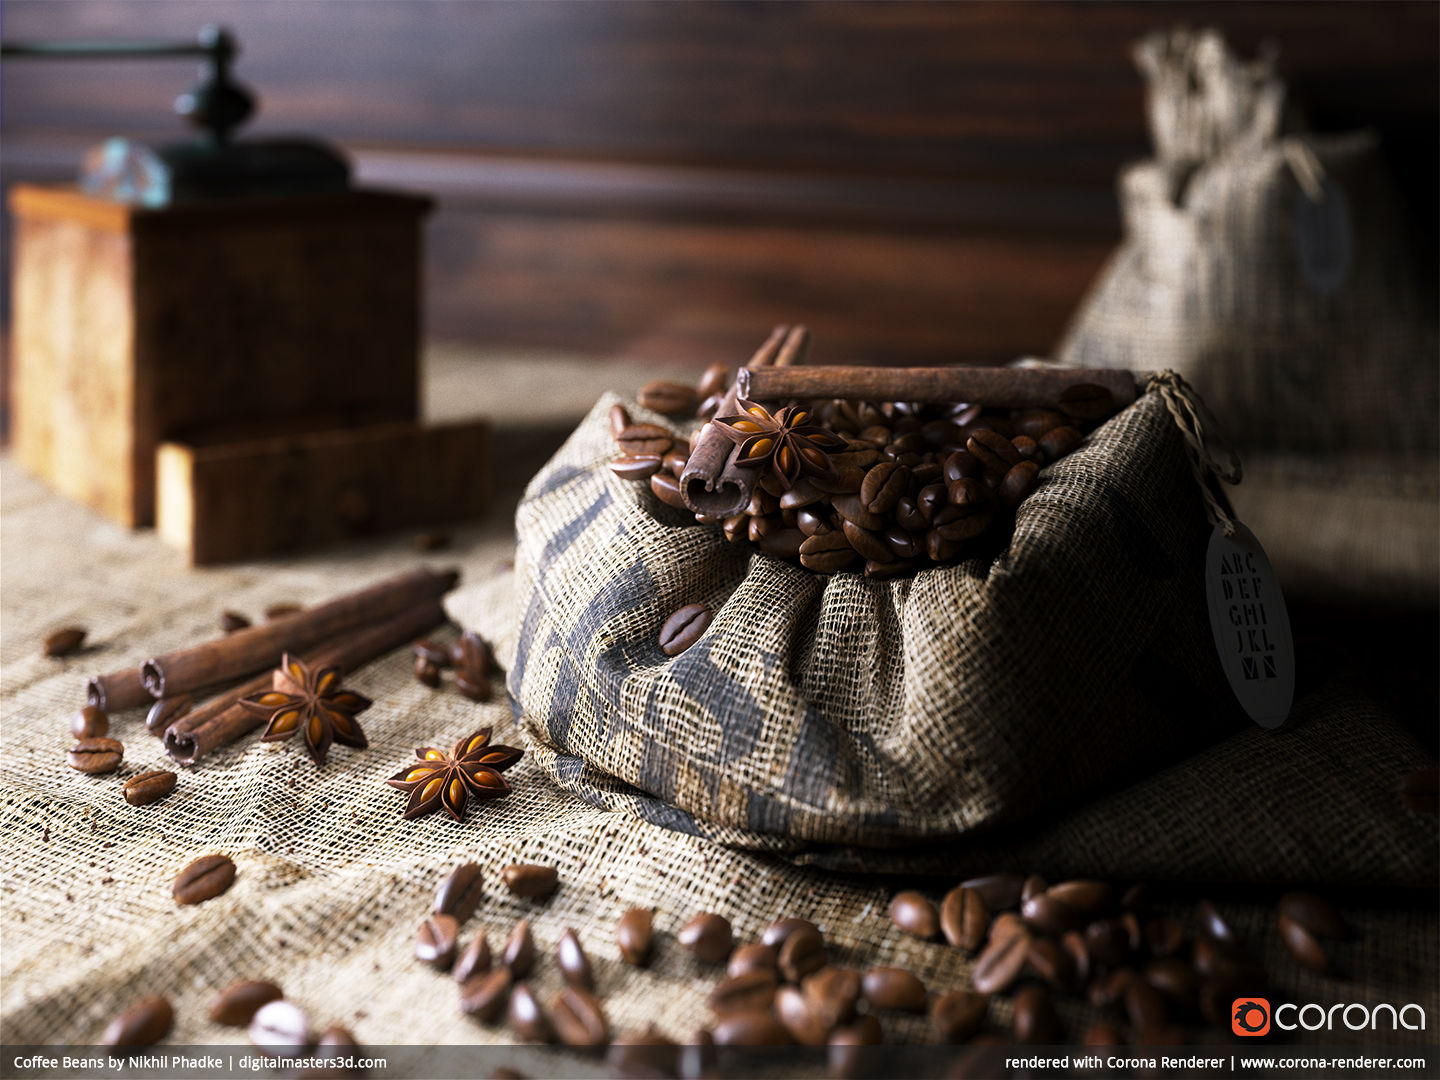 Coffee Beans by Nikhil Phadke